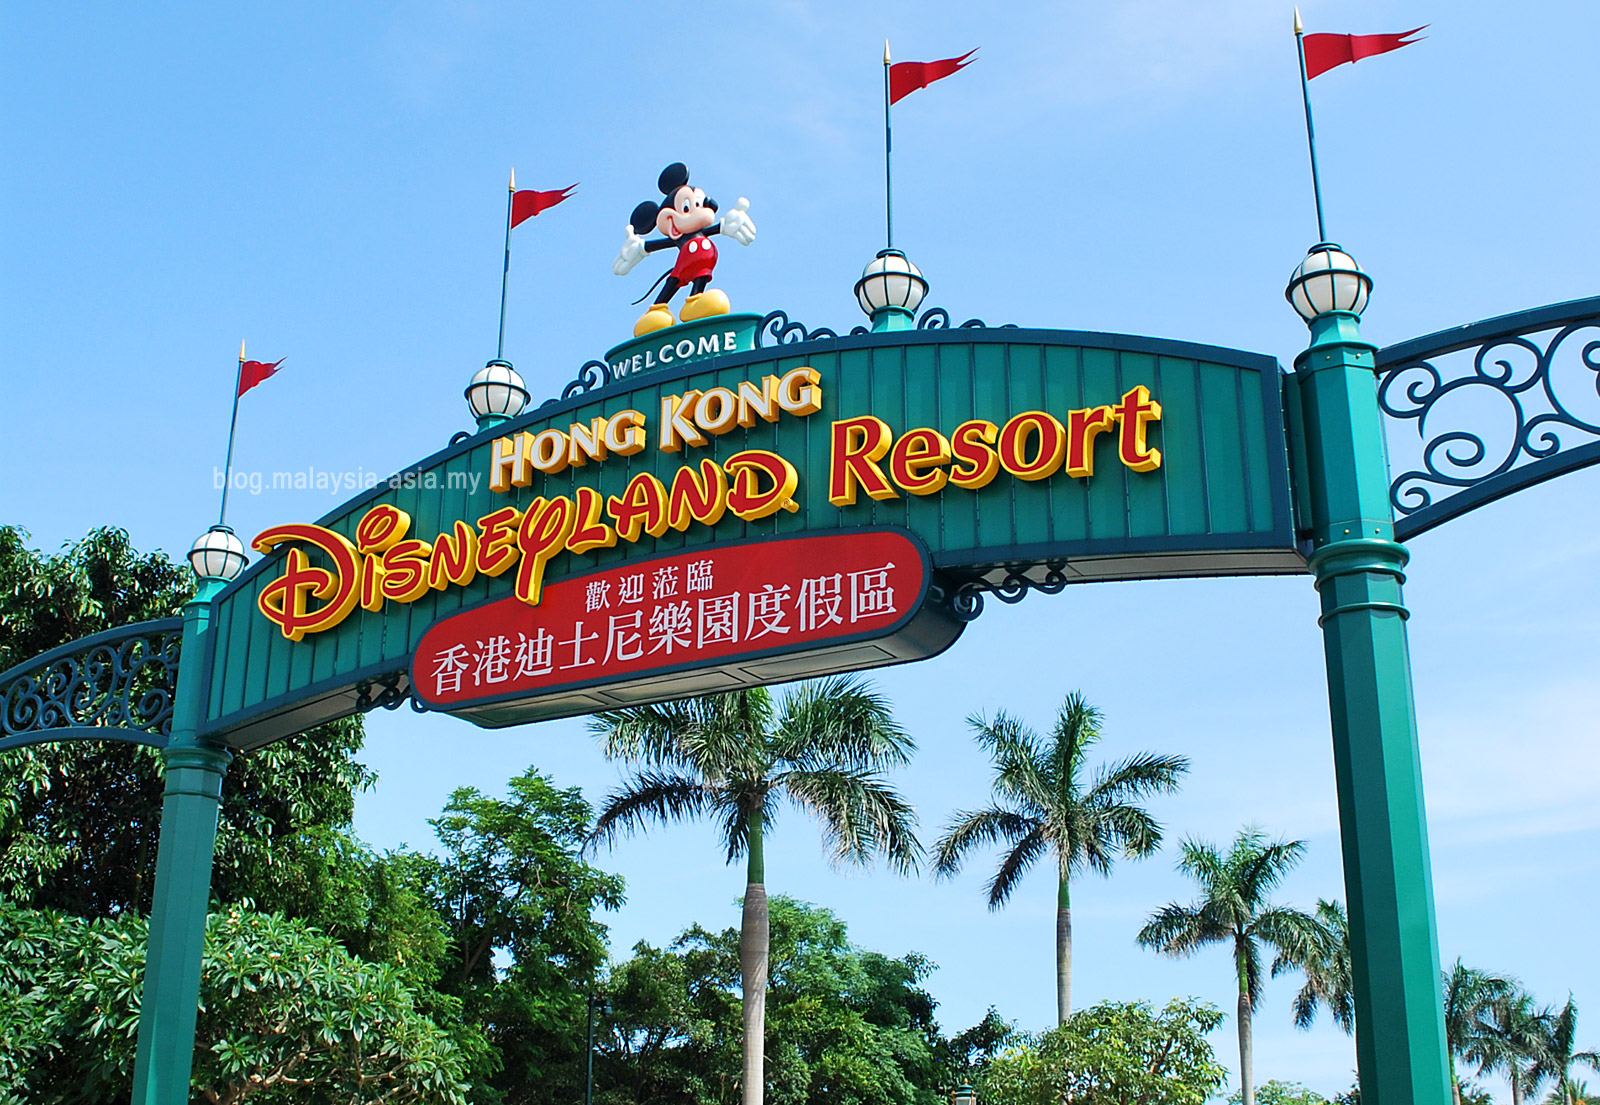 hongkong disneyland Hong kong disneyland is tiny in comparison with its older cousins, the selection of rides and attractions is limited (although growing) and prices as expected are.